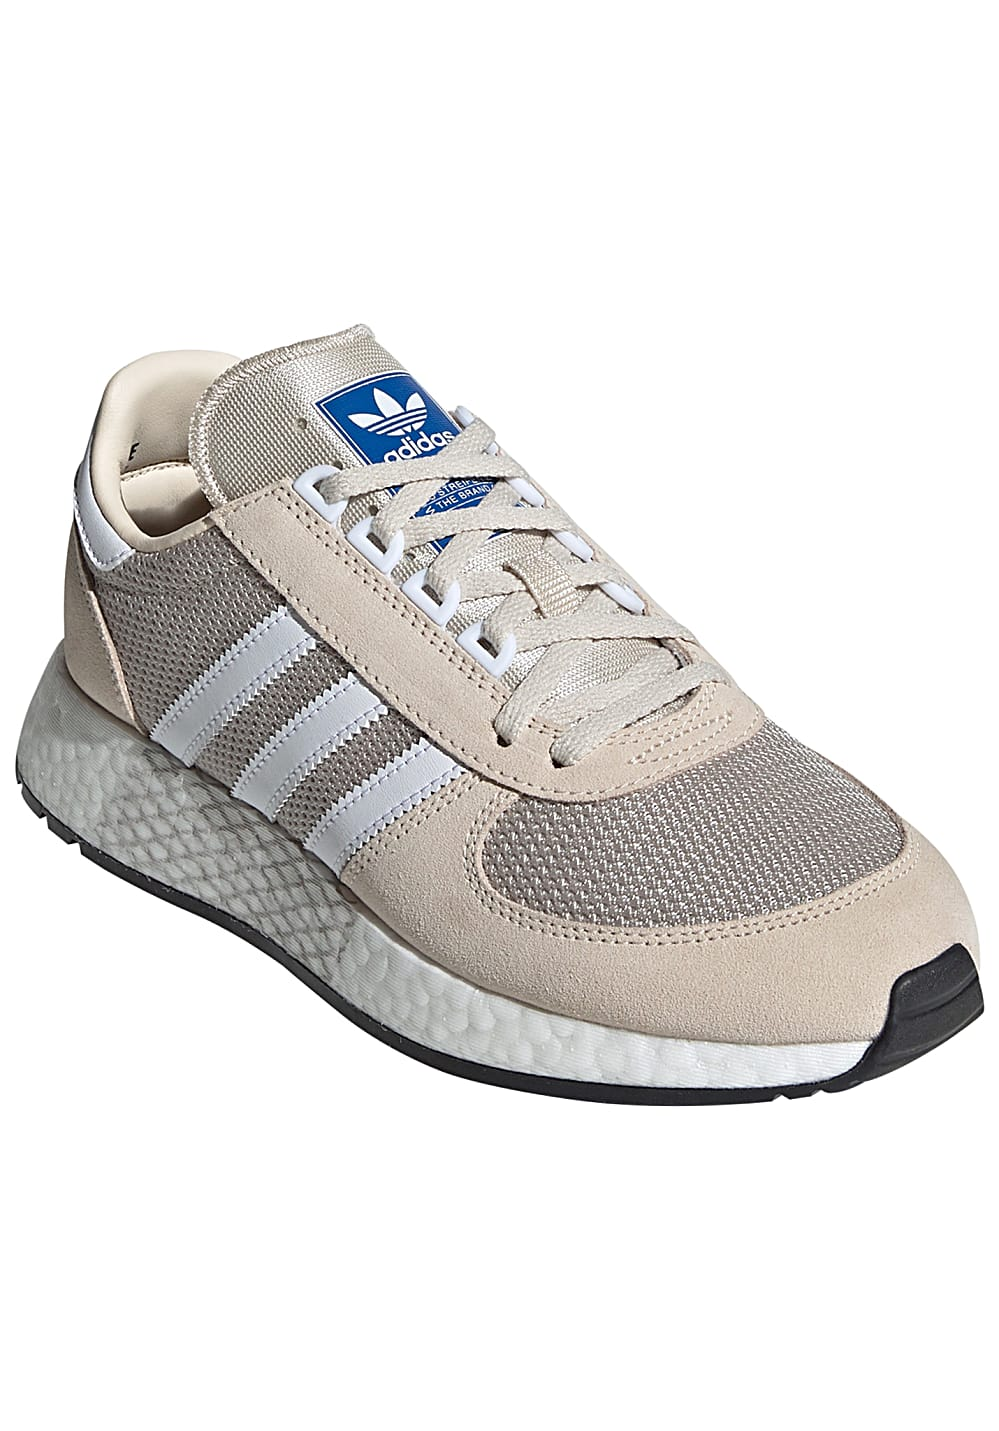 ADIDAS ORIGINALS Marathon Tech - Baskets pour Femme - Beige